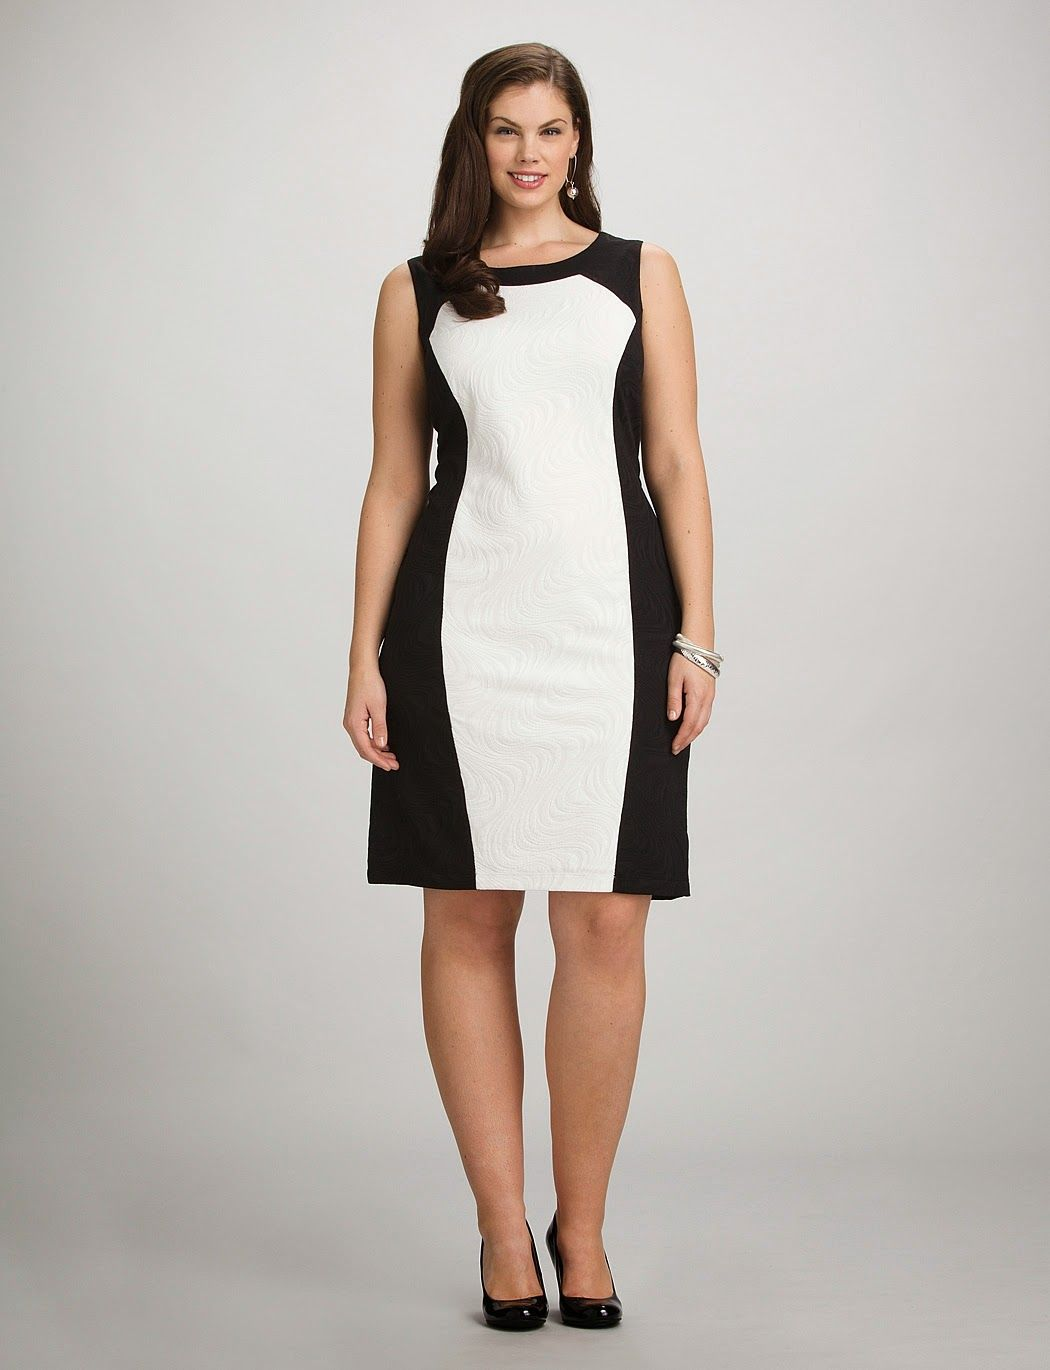 Wear black and white dresses to make your waist look smaller